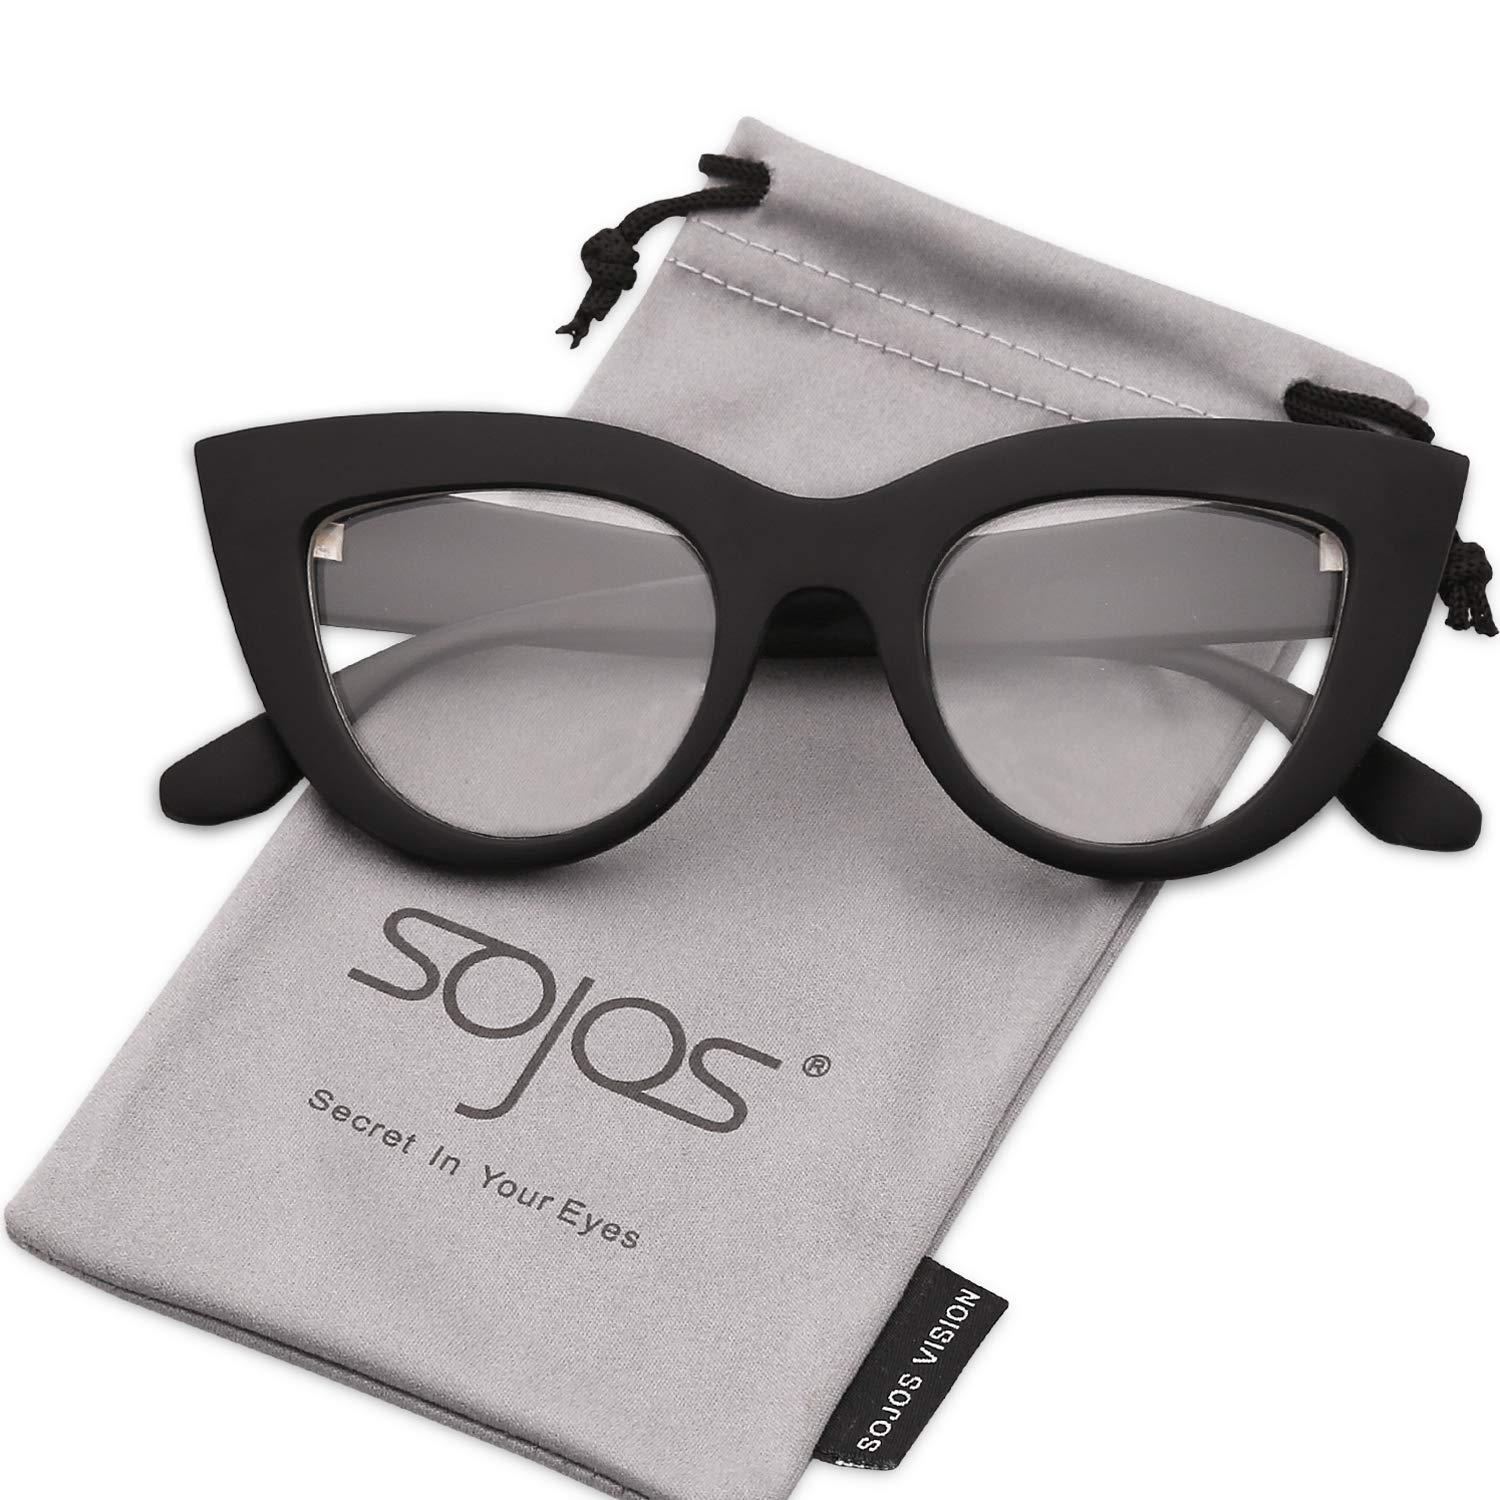 7e133b5b69 SOJOS Retro Vintage Cateye Sunglasses for Women Plastic Frame Mirrored Lens  SJ2939 product image